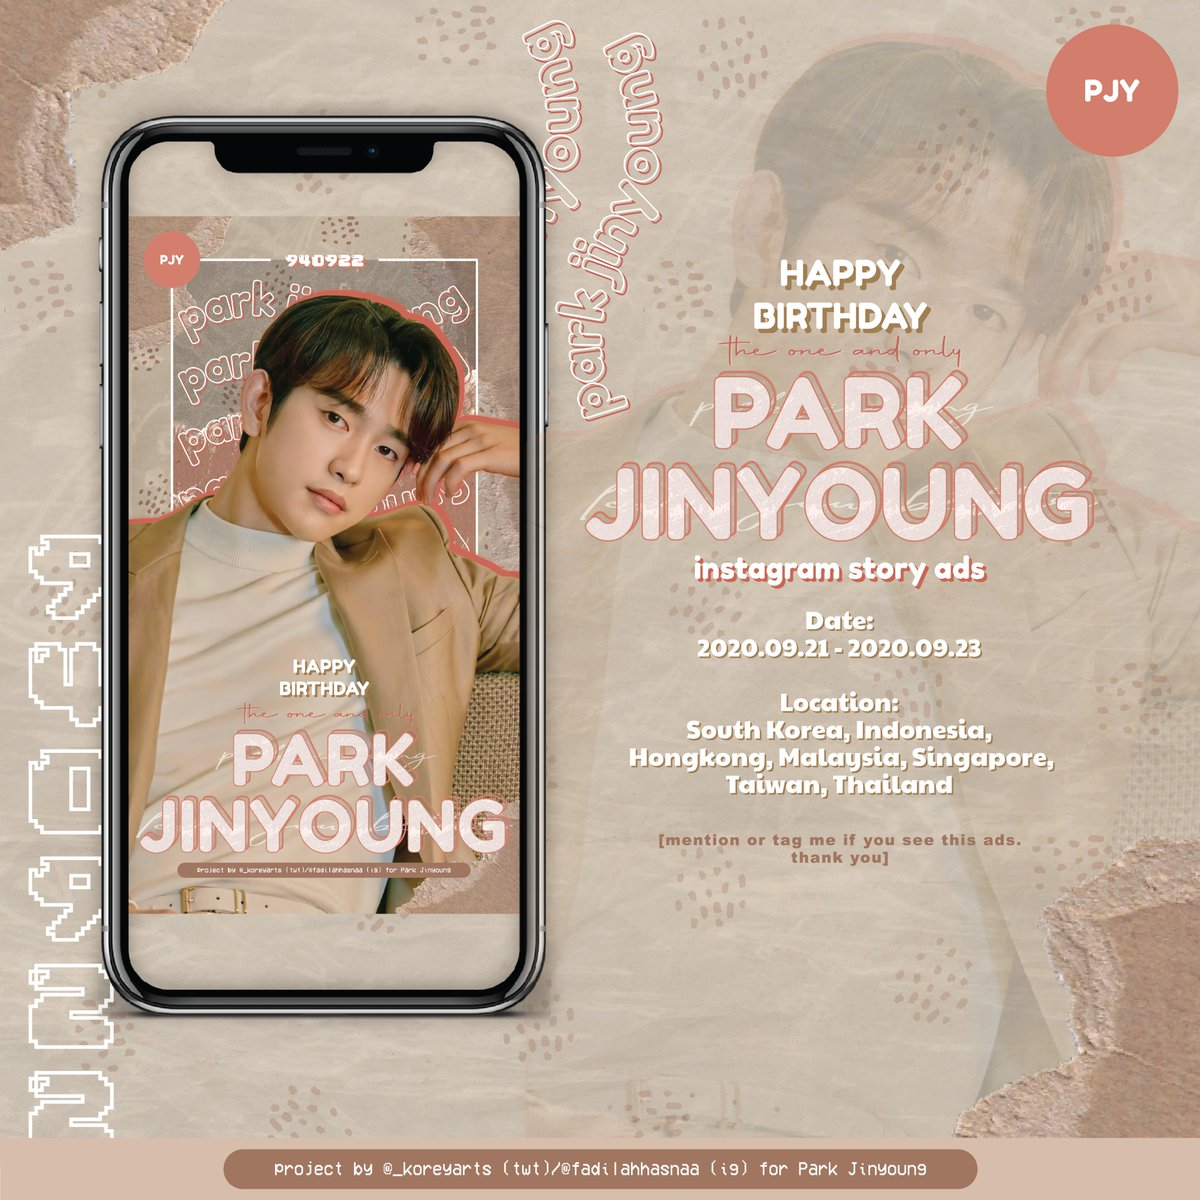 [help rt]  ♡ Happy Jinyoung Day - Instagram Story Ads ♡  Date: 2020.09.21 - 2020.09.23 Location: South Korea, Indonesia, Hongkong, Malaysia, Singapore, Taiwan, Thailand  ♡ feel free to mention/tag me if you see this ads, thank you ~ ♡  #GOT7 #Jinyoung  @GOT7Official https://t.co/2ytFG685ho